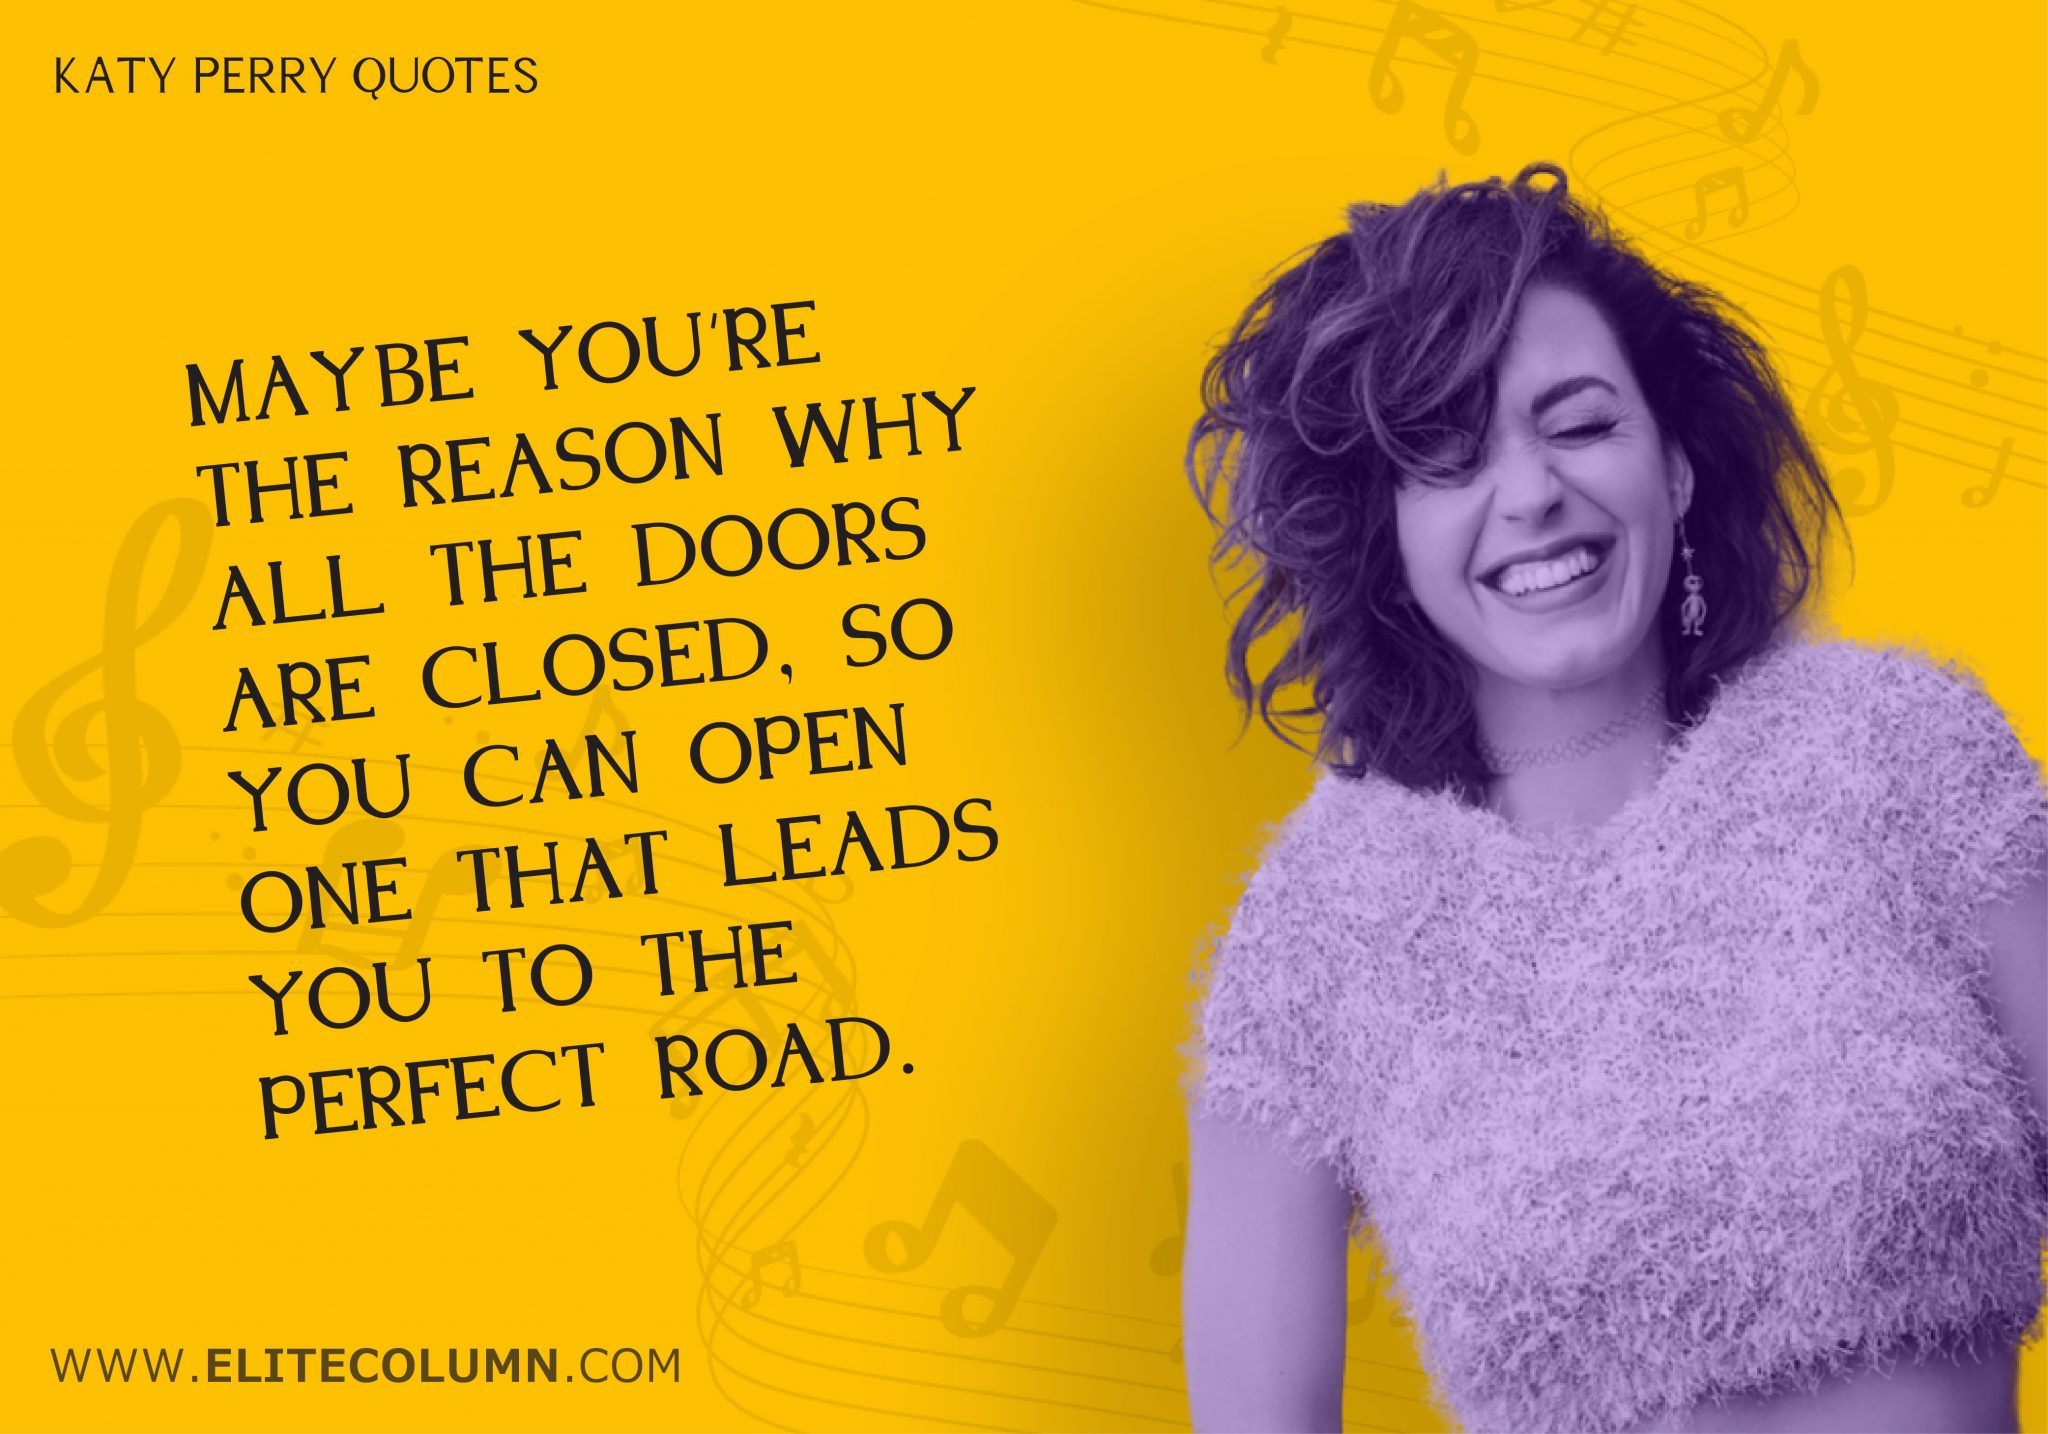 Katy Perry Quotes (1)